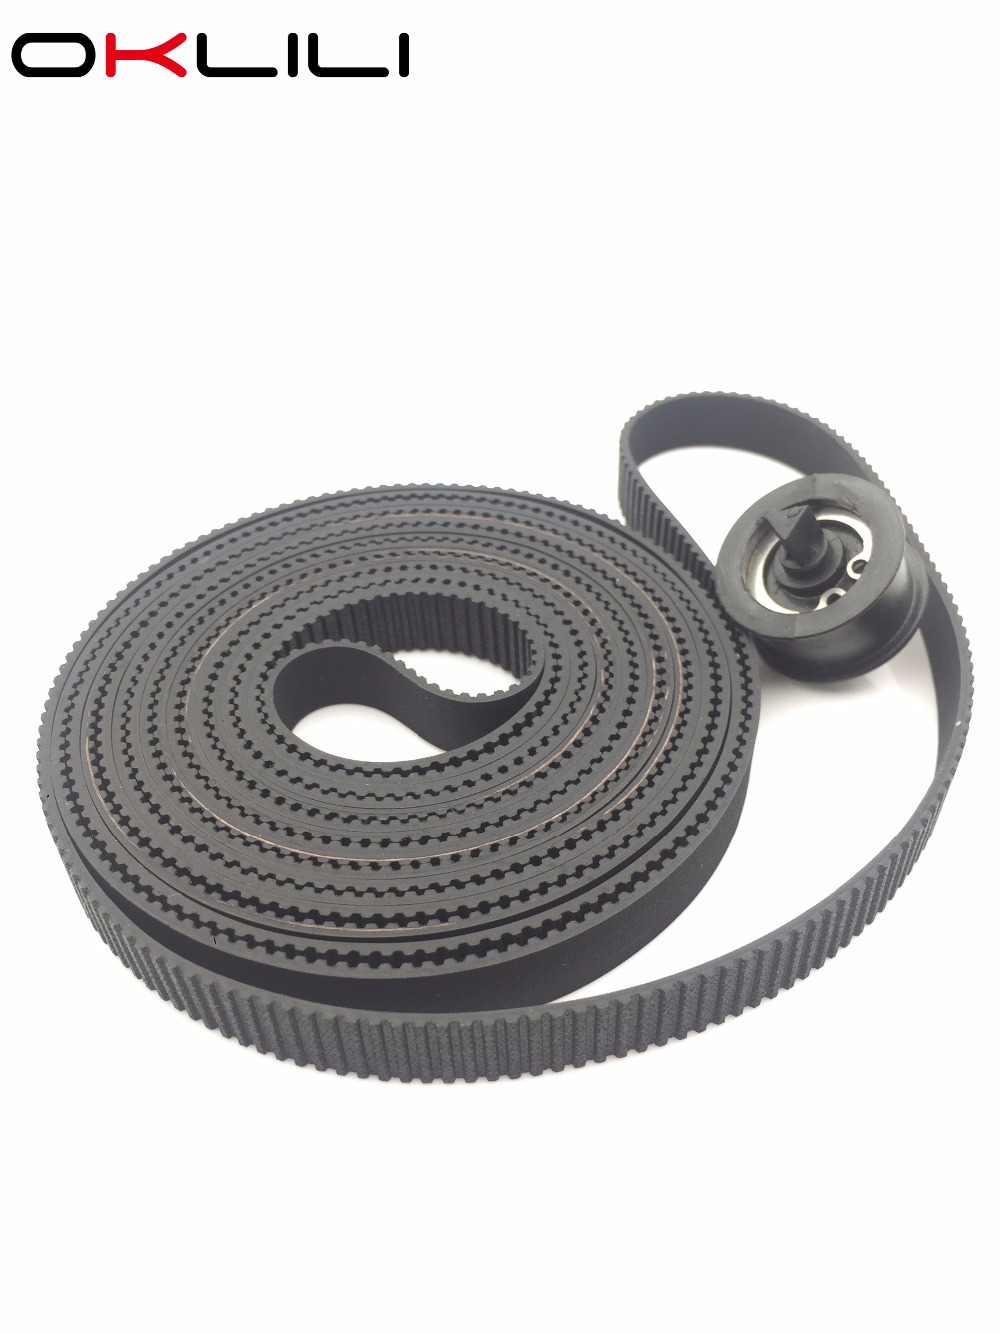 C7770-60014 Carriage Belt 42 B0 Size with Pulley for HP DesignJet 500 500PS 800 800PS 510 510PS 815 CC800PS Plus 820 815MFP free shipping original new c7770 60274 carriage assembly trailing cable kit b0 for hp500 500ps 800 800ps 815 820